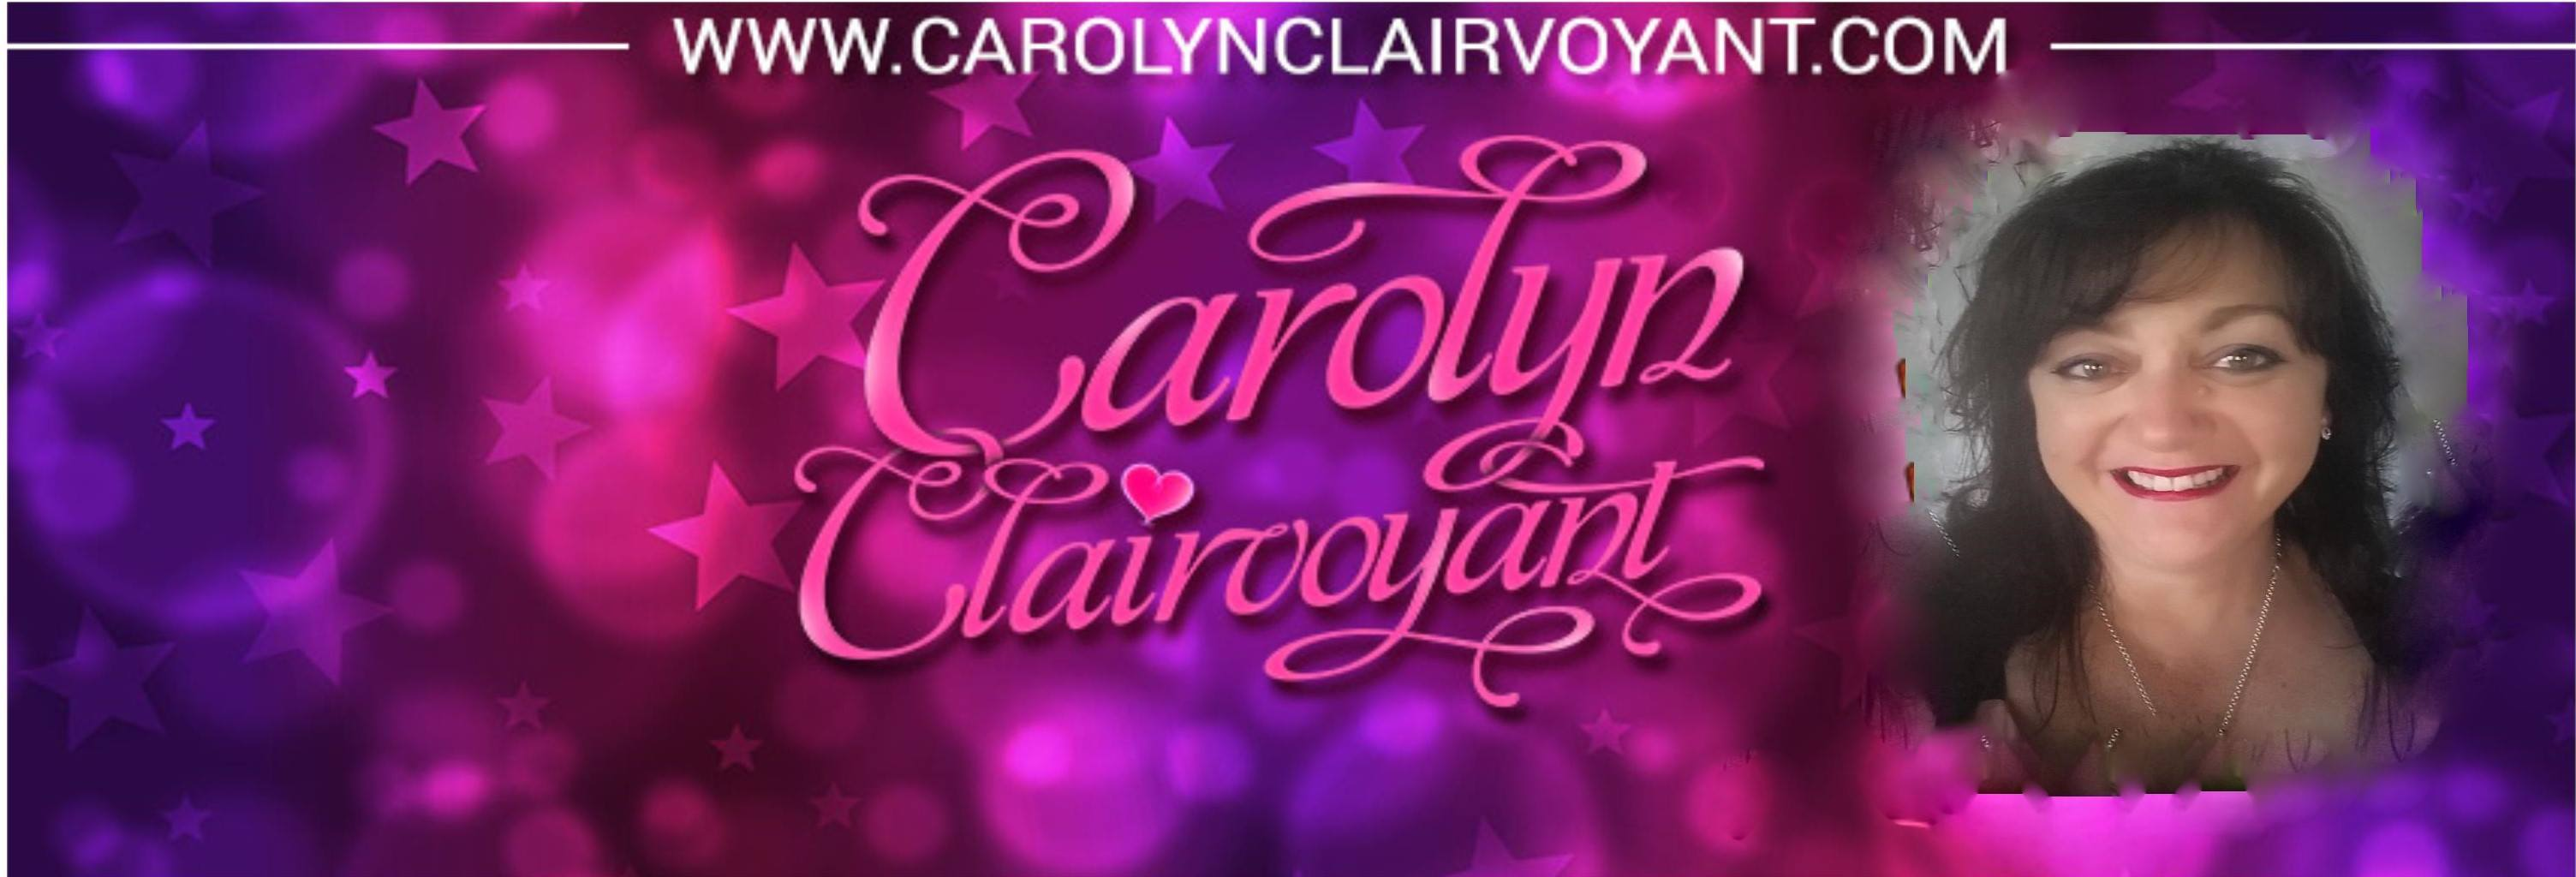 Interview with Carolyn, a well experienced and expert clairvoyant